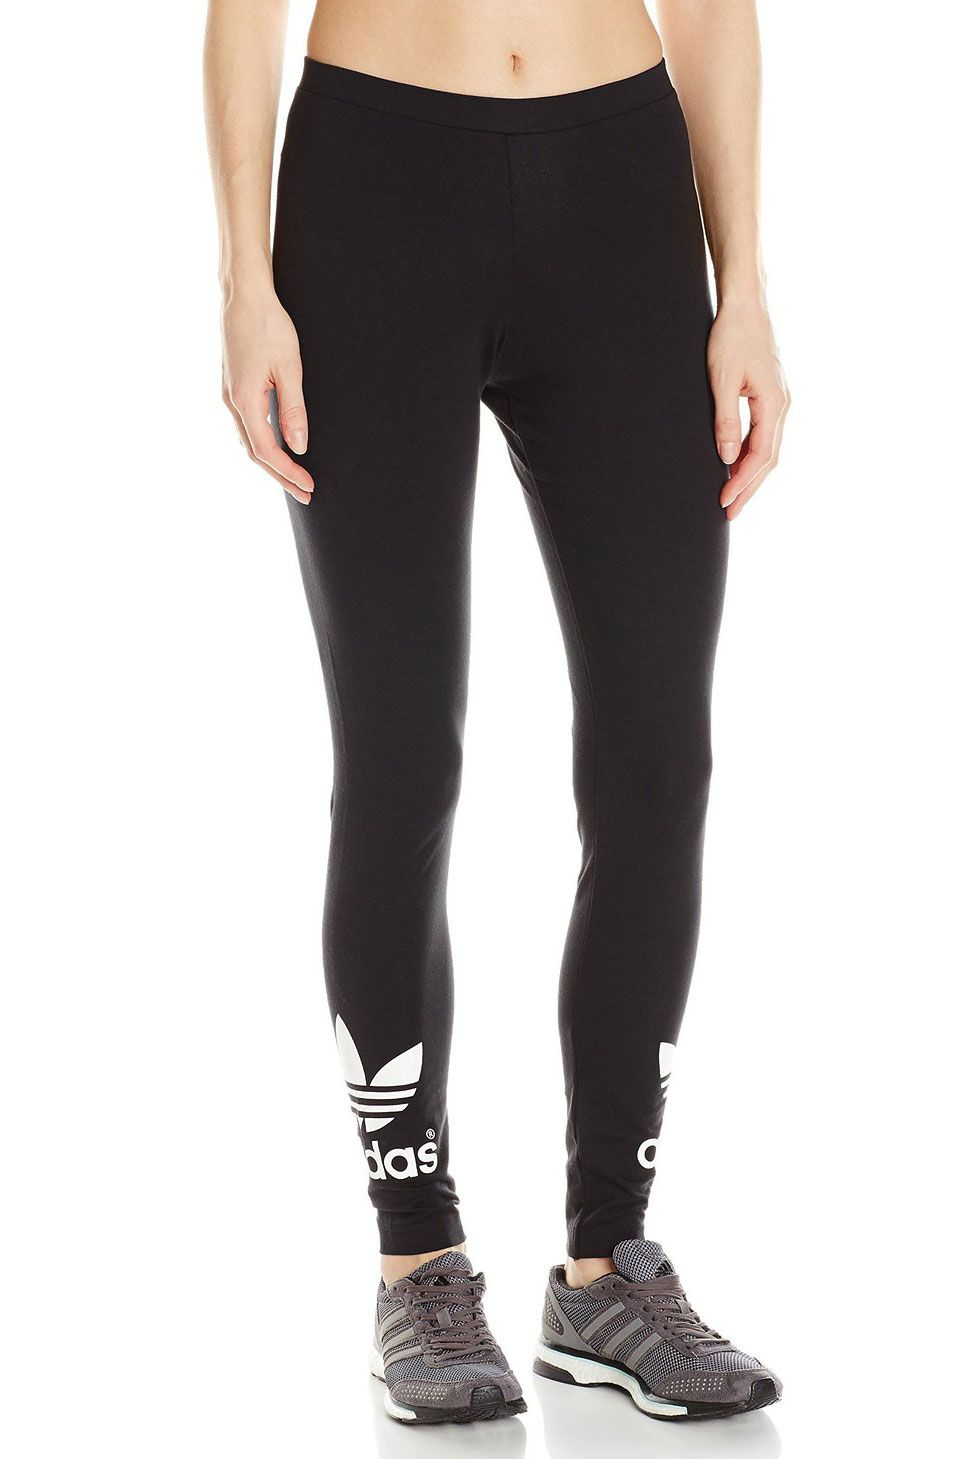 0c508e8aabf7 Adidas Originals Women s Trefoil Leggings